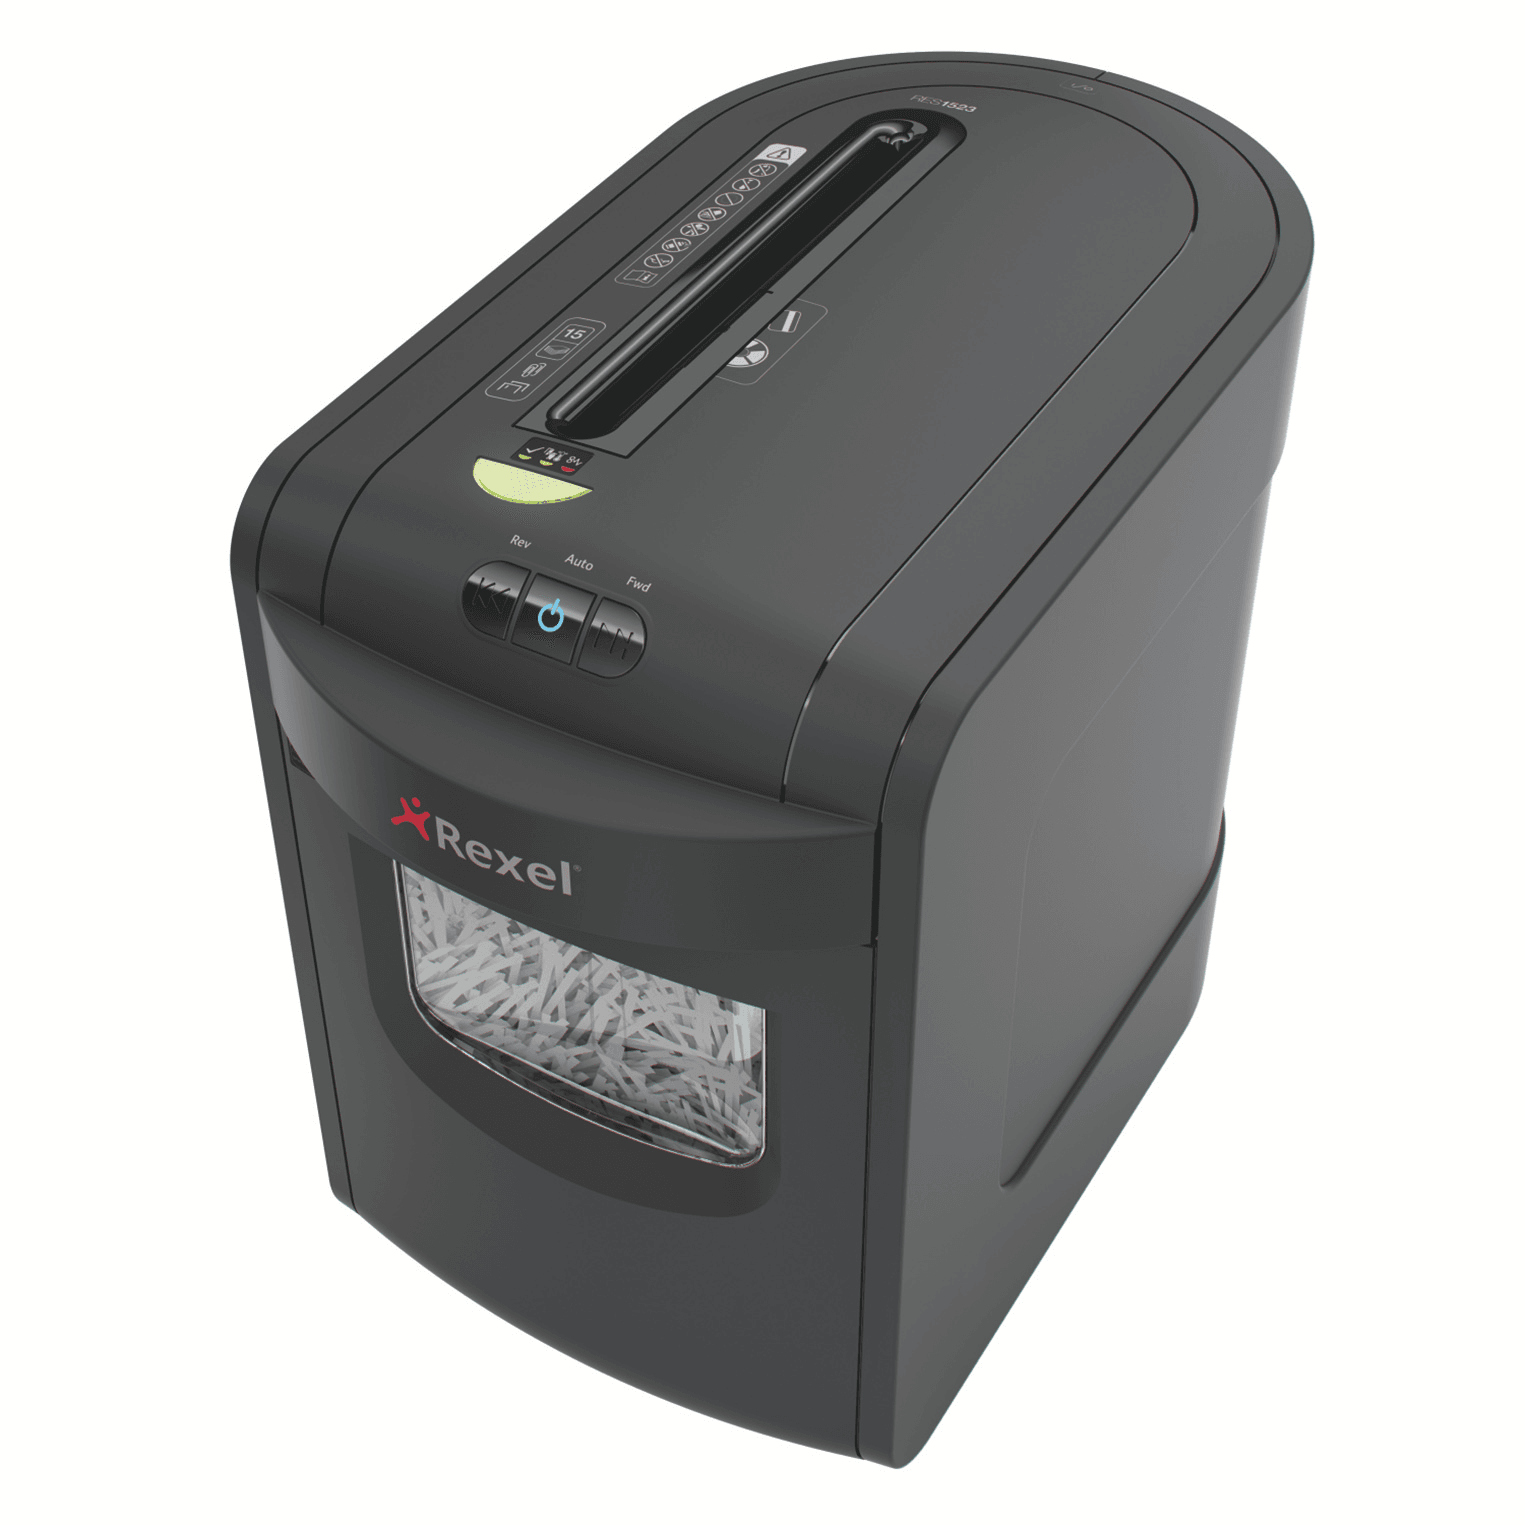 Rexel Mercury RES1523 Jam Free Shredder